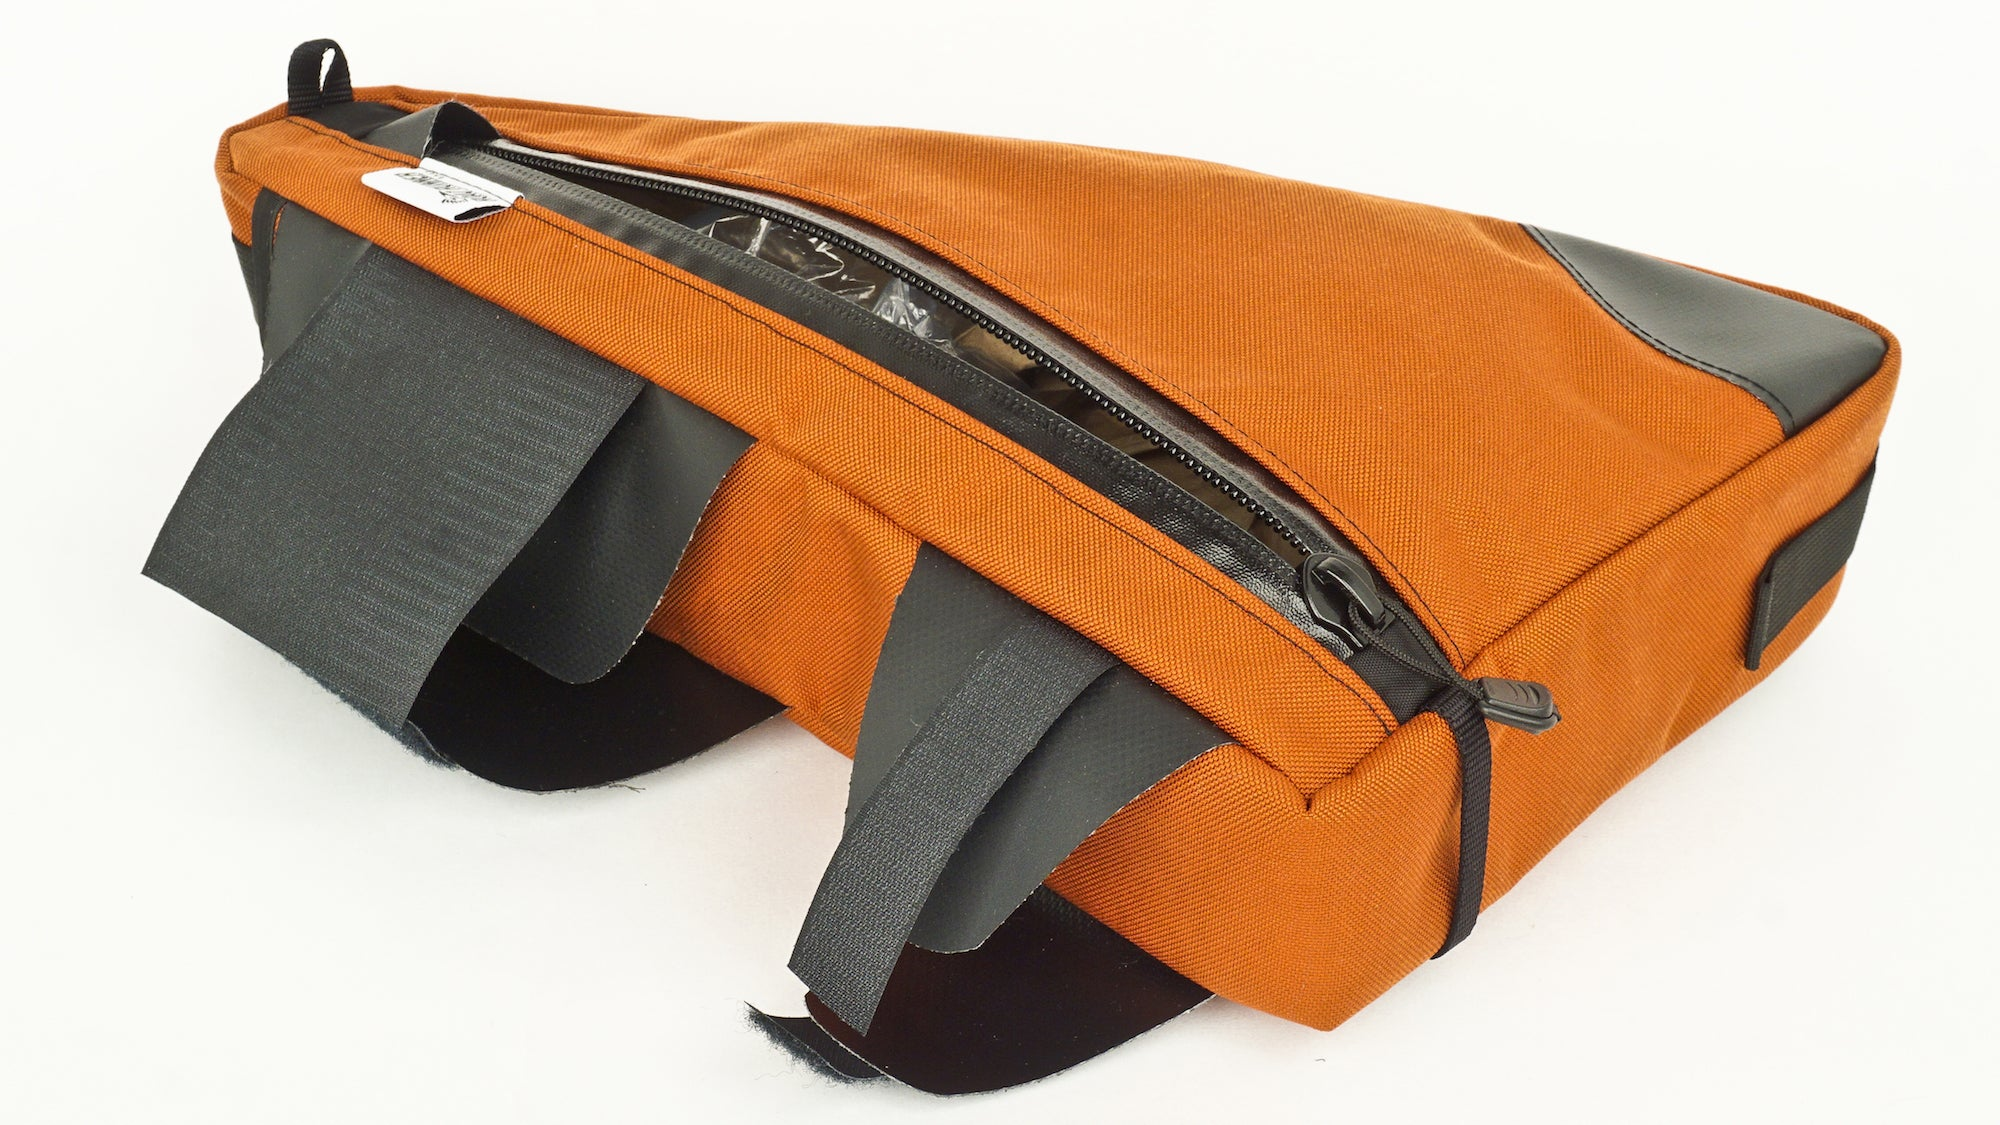 Mountain Bike Full Frame Bag